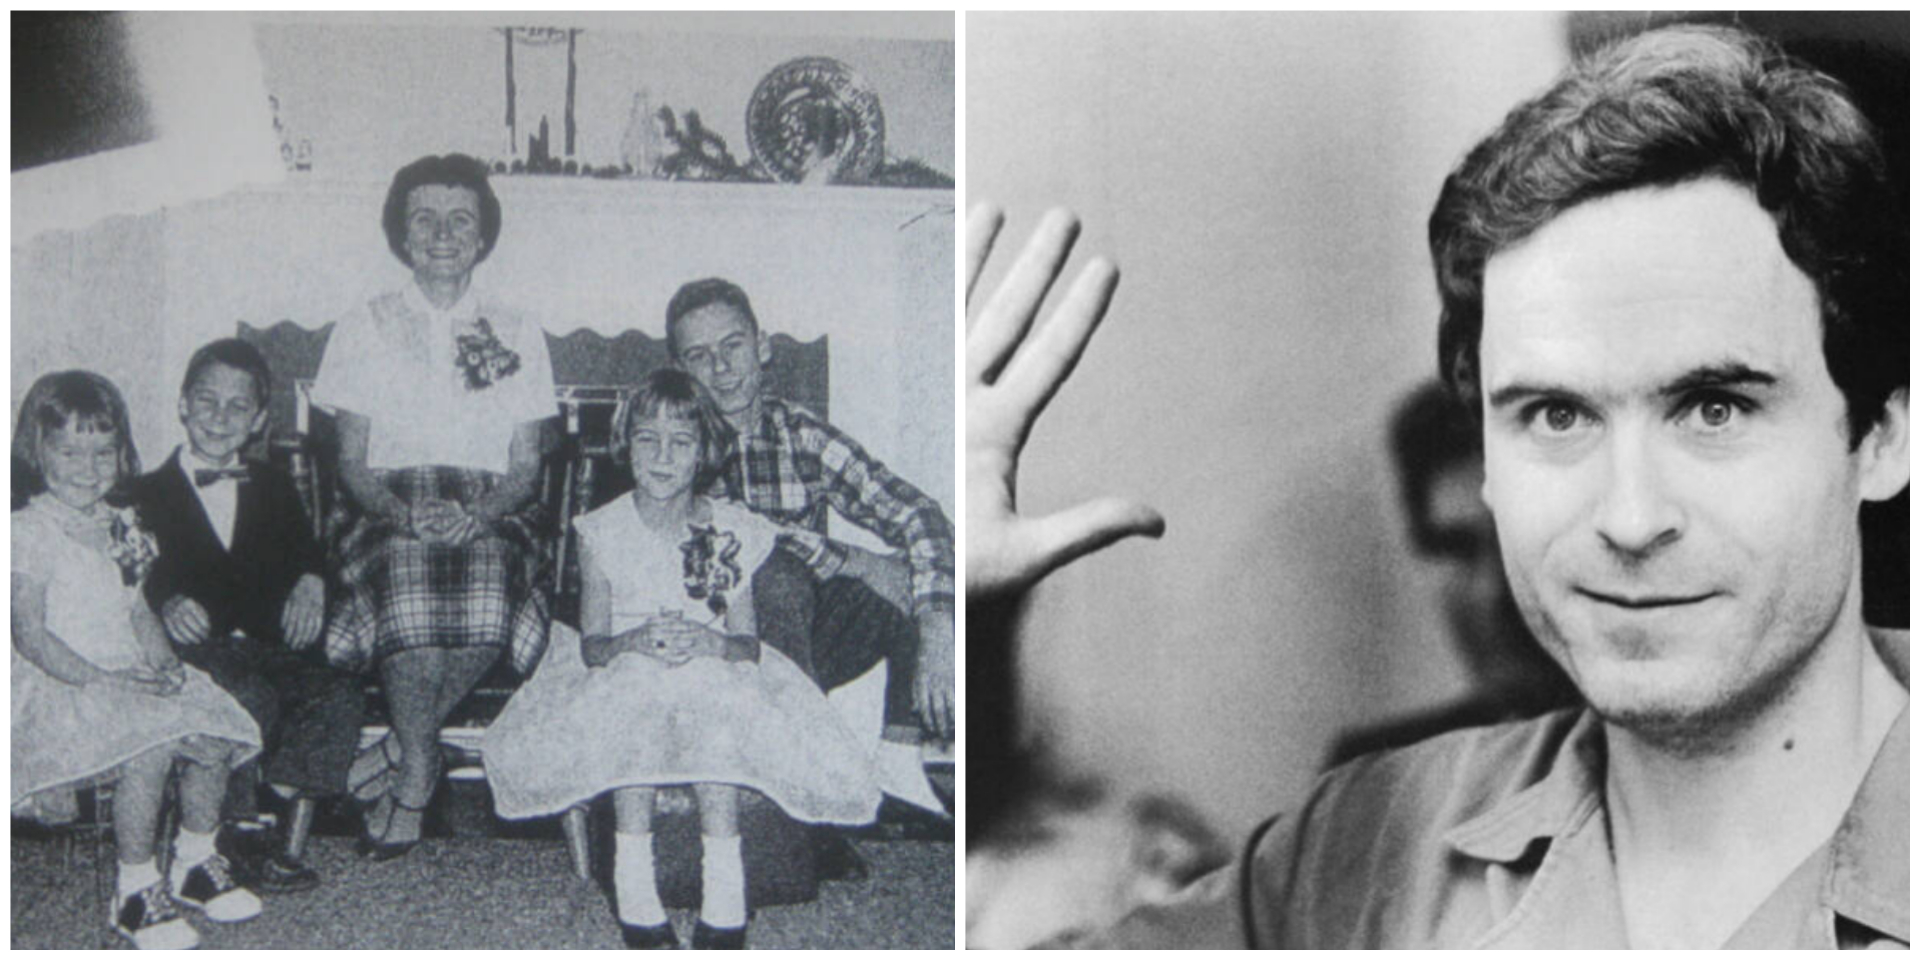 Does Ted Bundy's Childhood Hold The Key To His Madness?